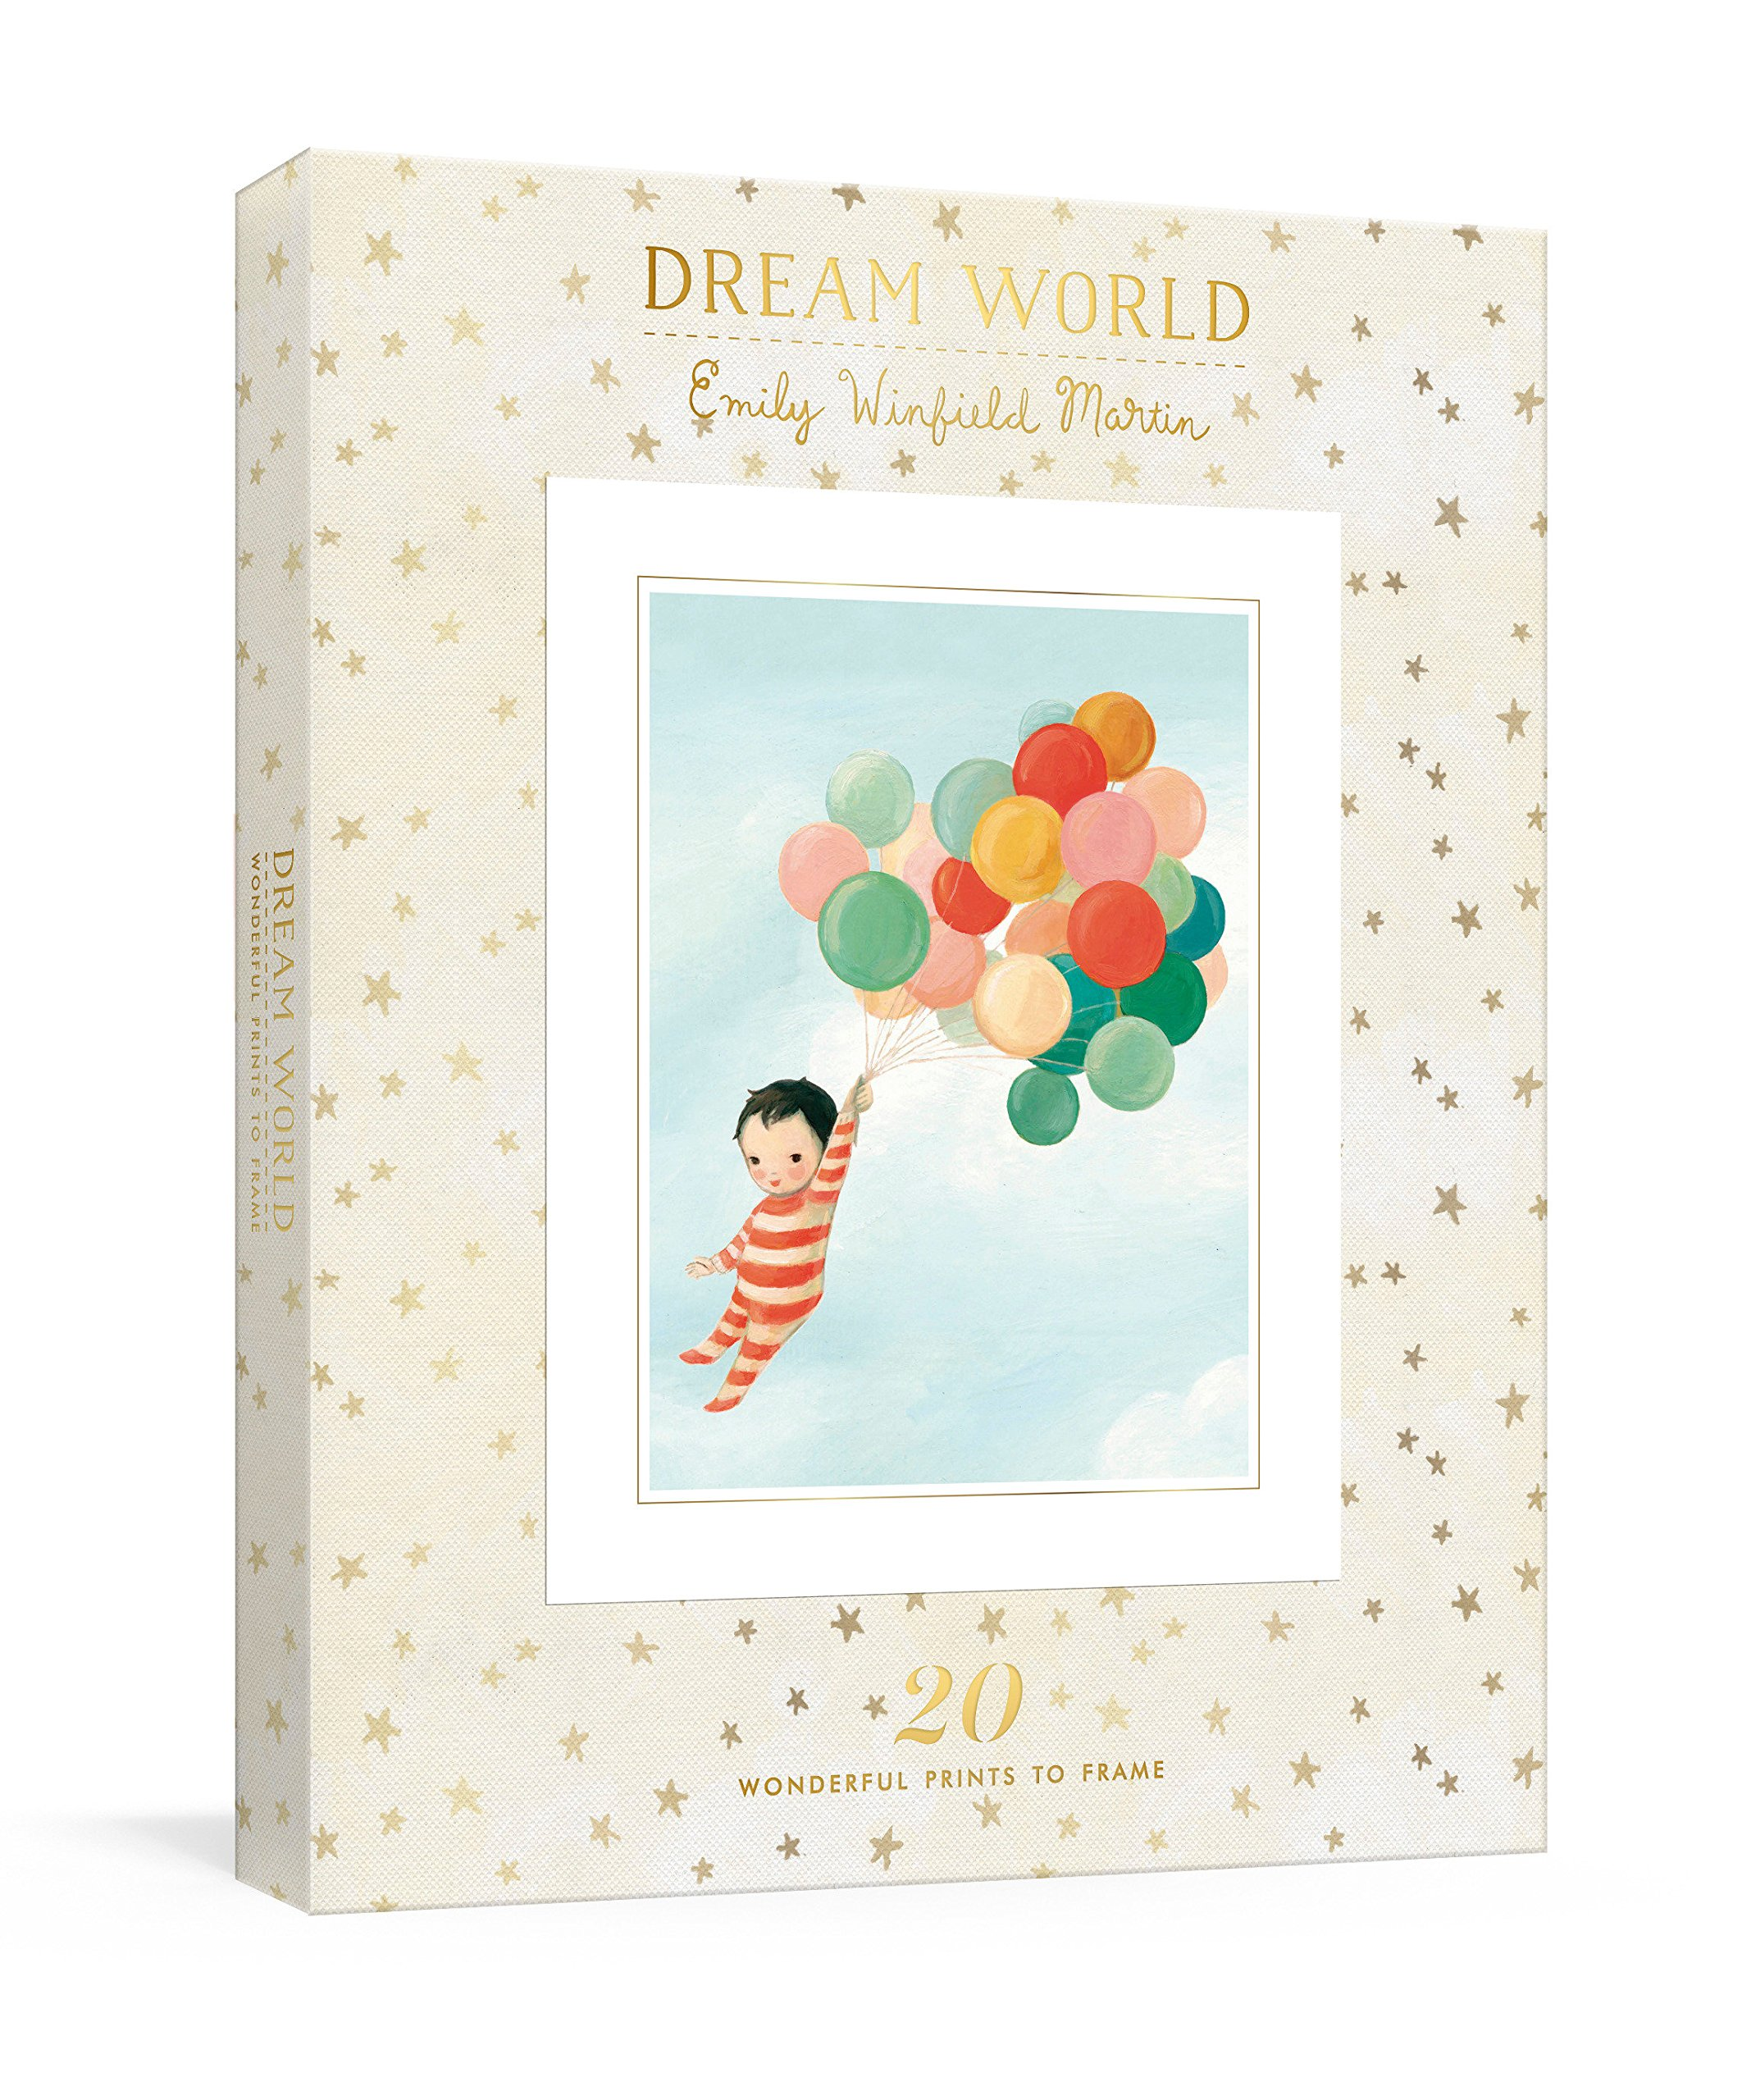 Amazon.com: Dream World: 20 Wonderful Prints to Frame (9780525574590 ...